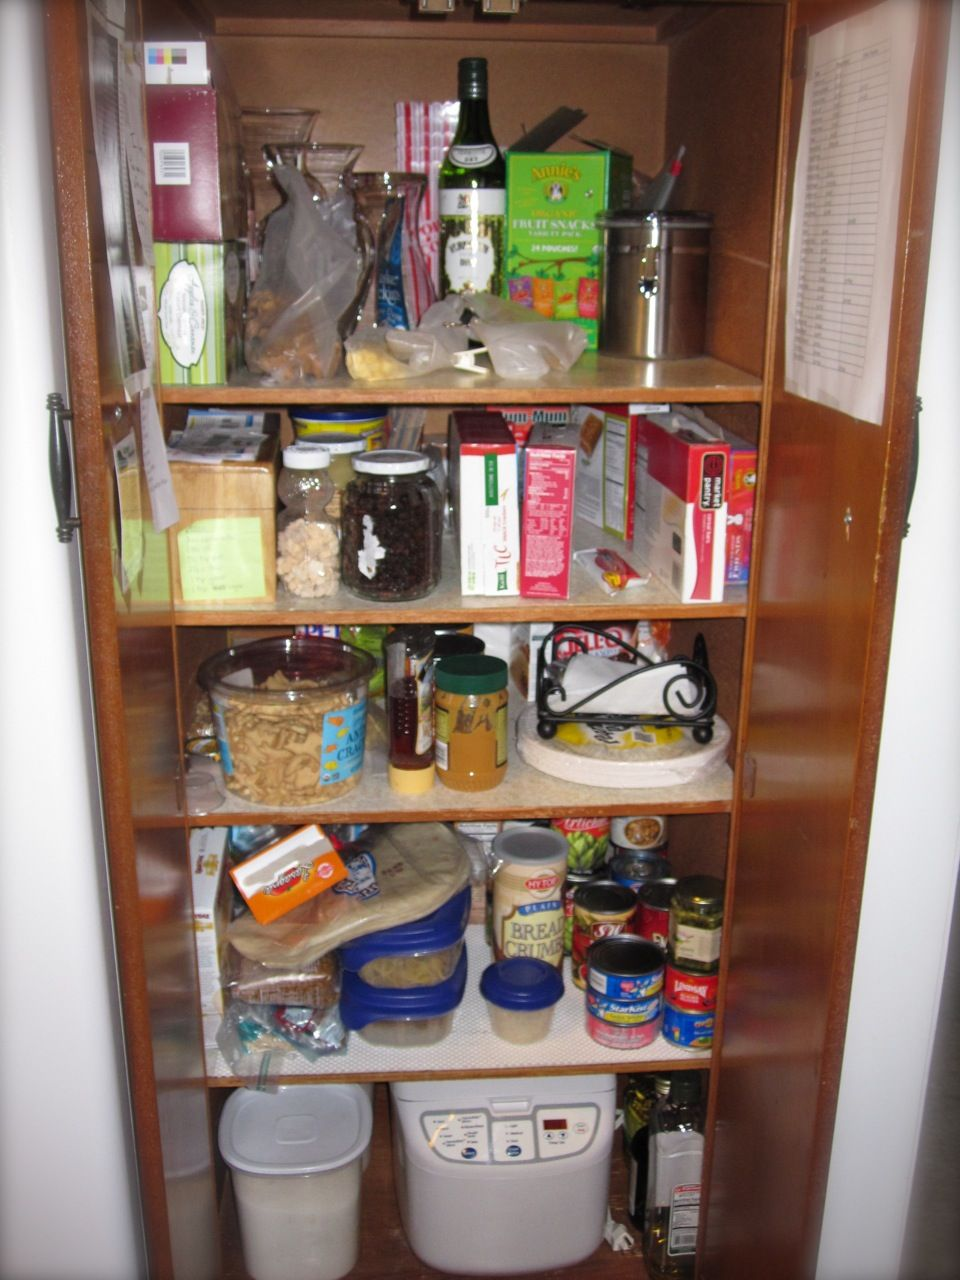 Ideas For Organizing Deep Kitchen Cabinets on ideas for organizing refrigerator, ideas for organizing closets, ideas for organizing tools, ideas for small kitchen, ideas for organizing living room furniture, ideas for home organization, ideas for organizing toys,